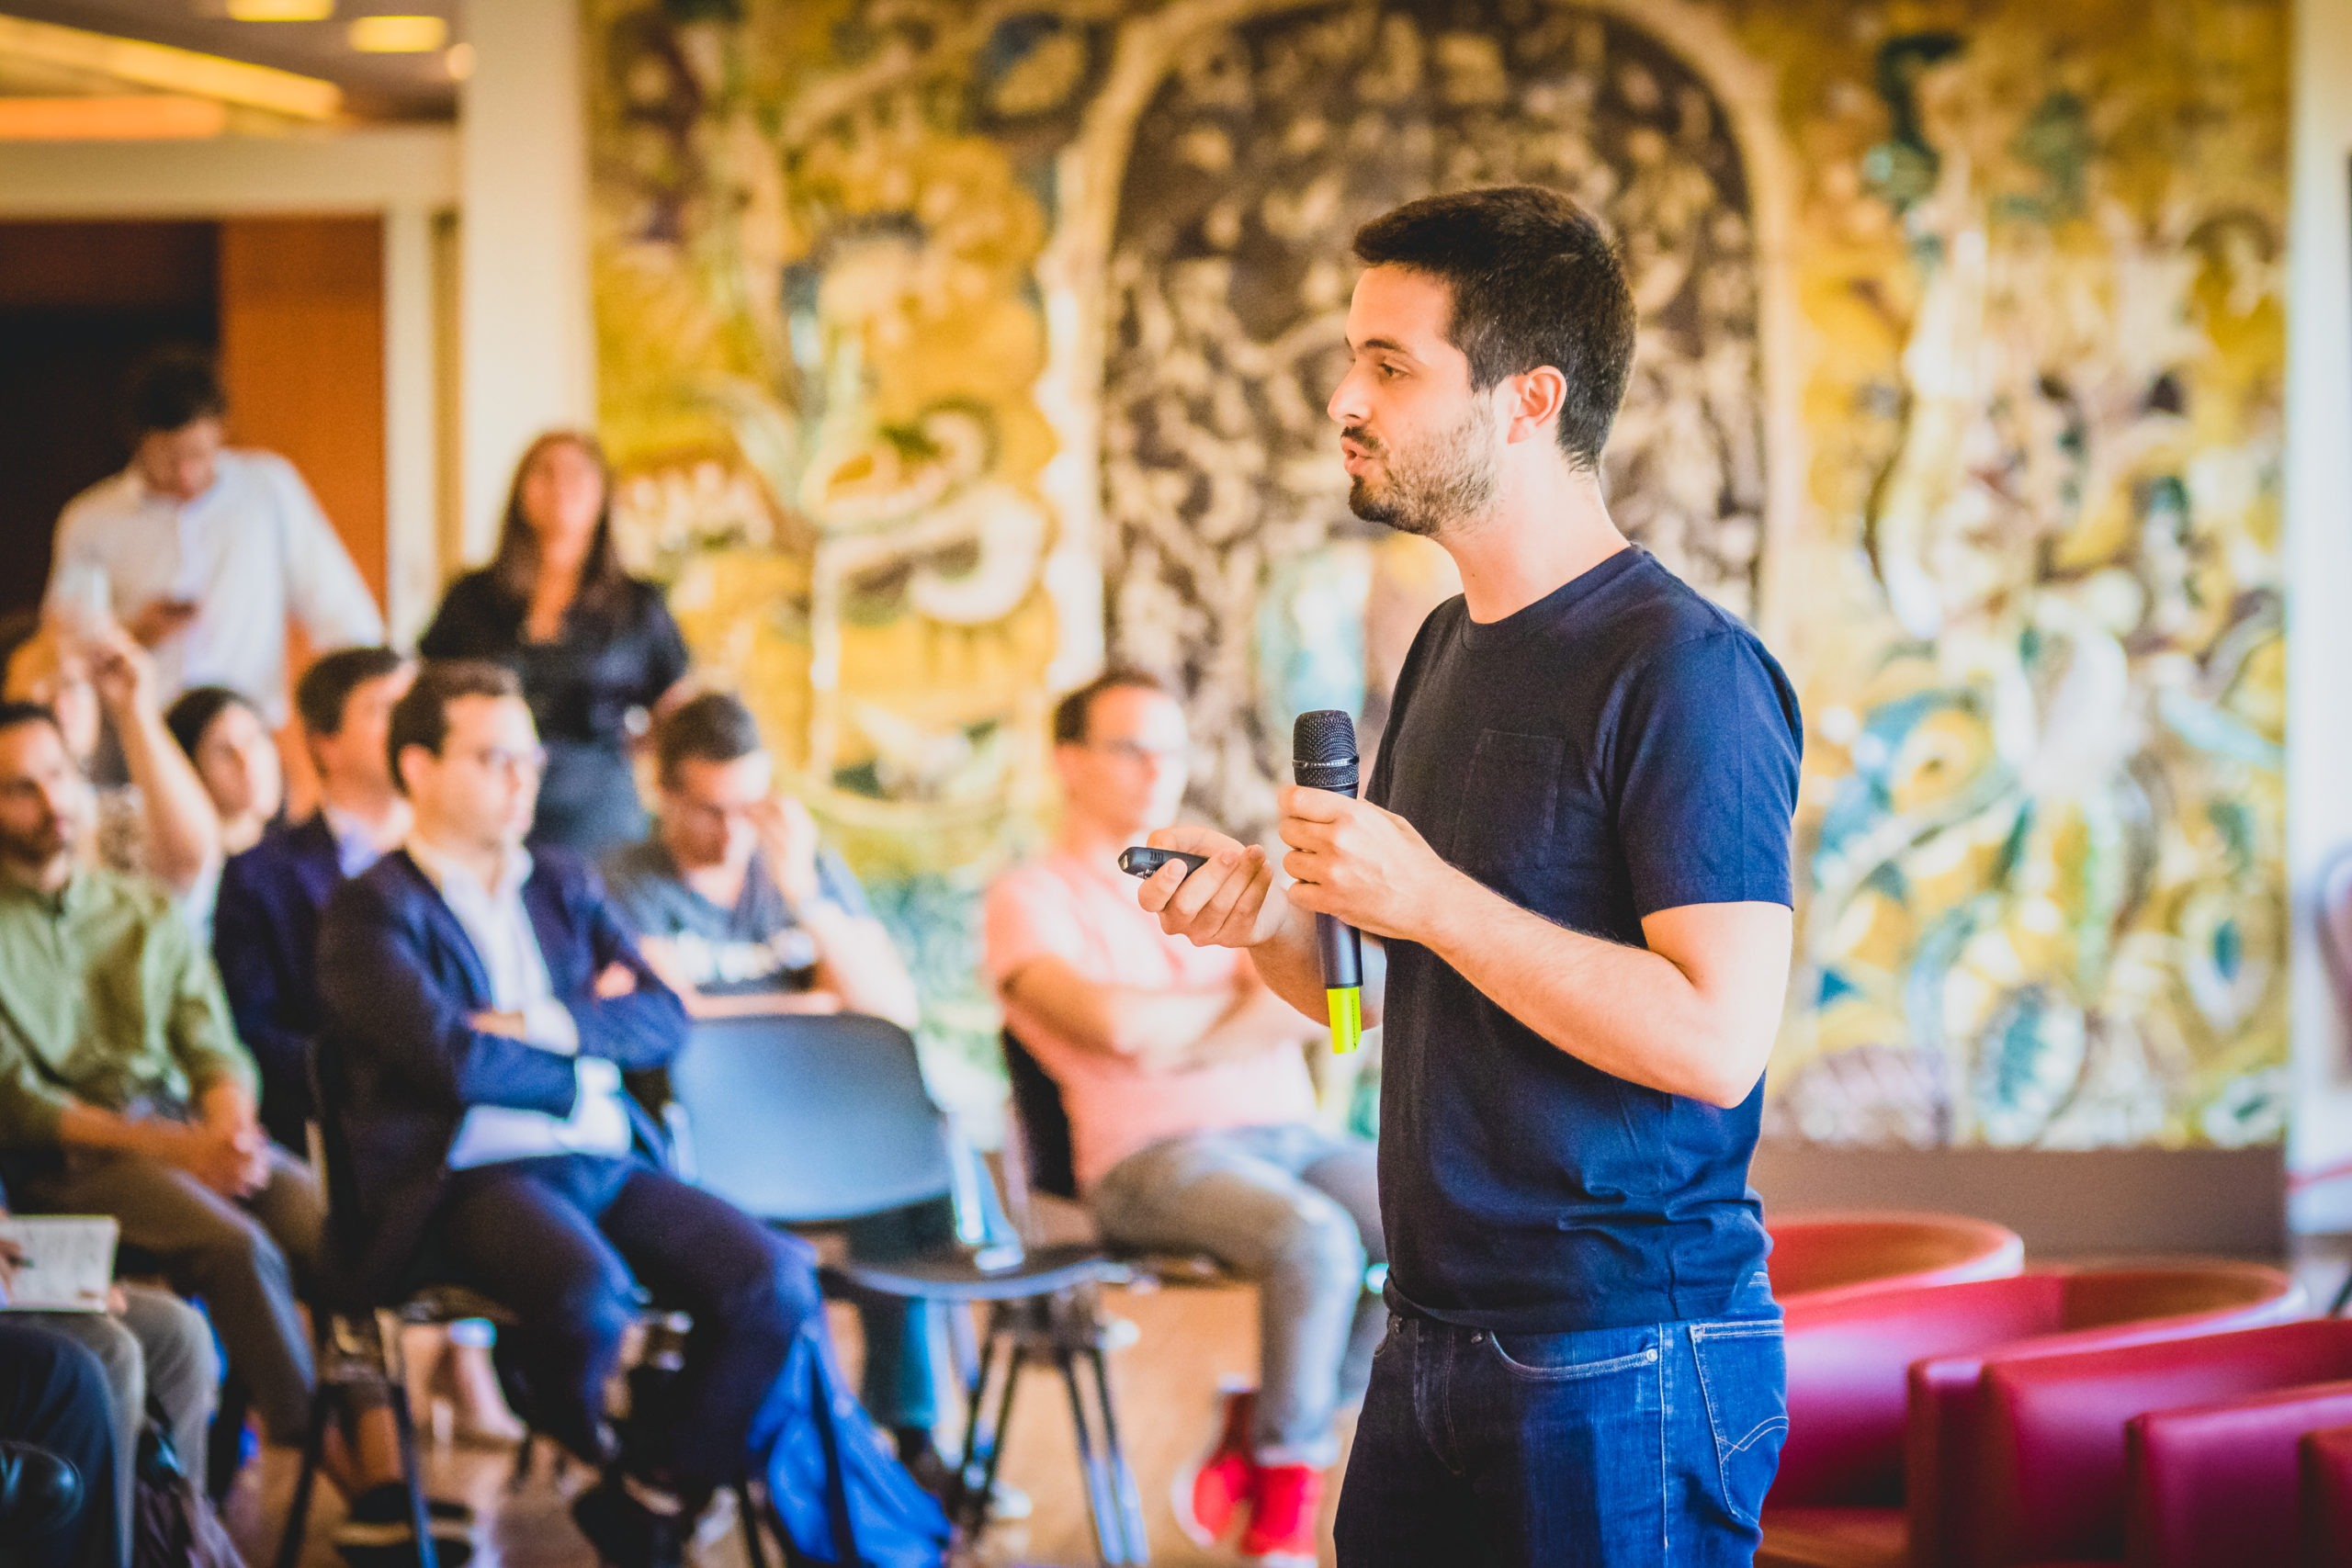 Reinaldo Moreira is a co-founder of Springkode, a participant from the first cohort of Maze X, the impact startup accelerator